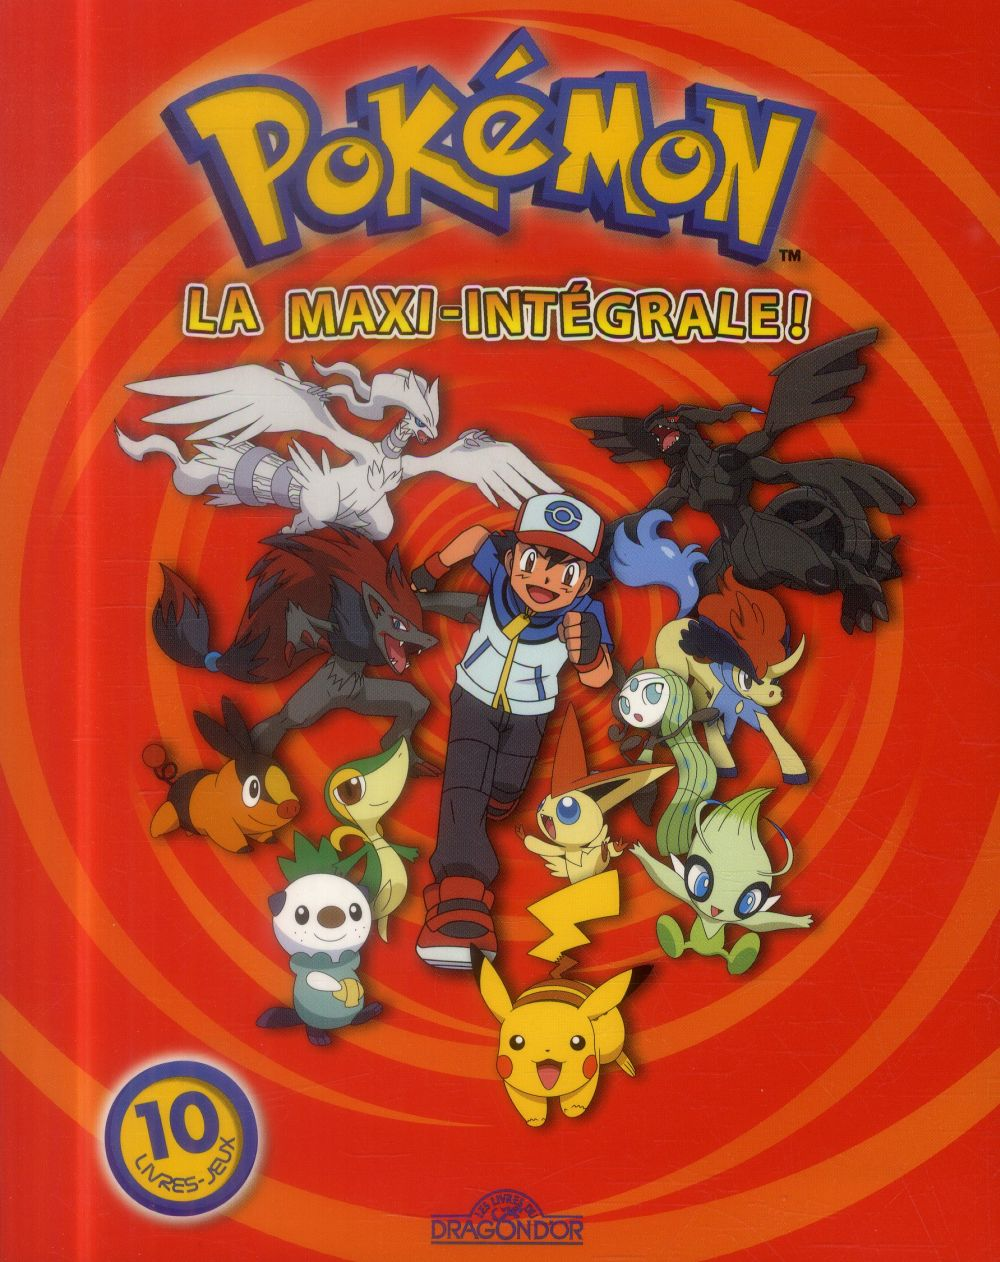 POKEMON - LA MAXI-INTEGRALE !  Livres du Dragon d'or